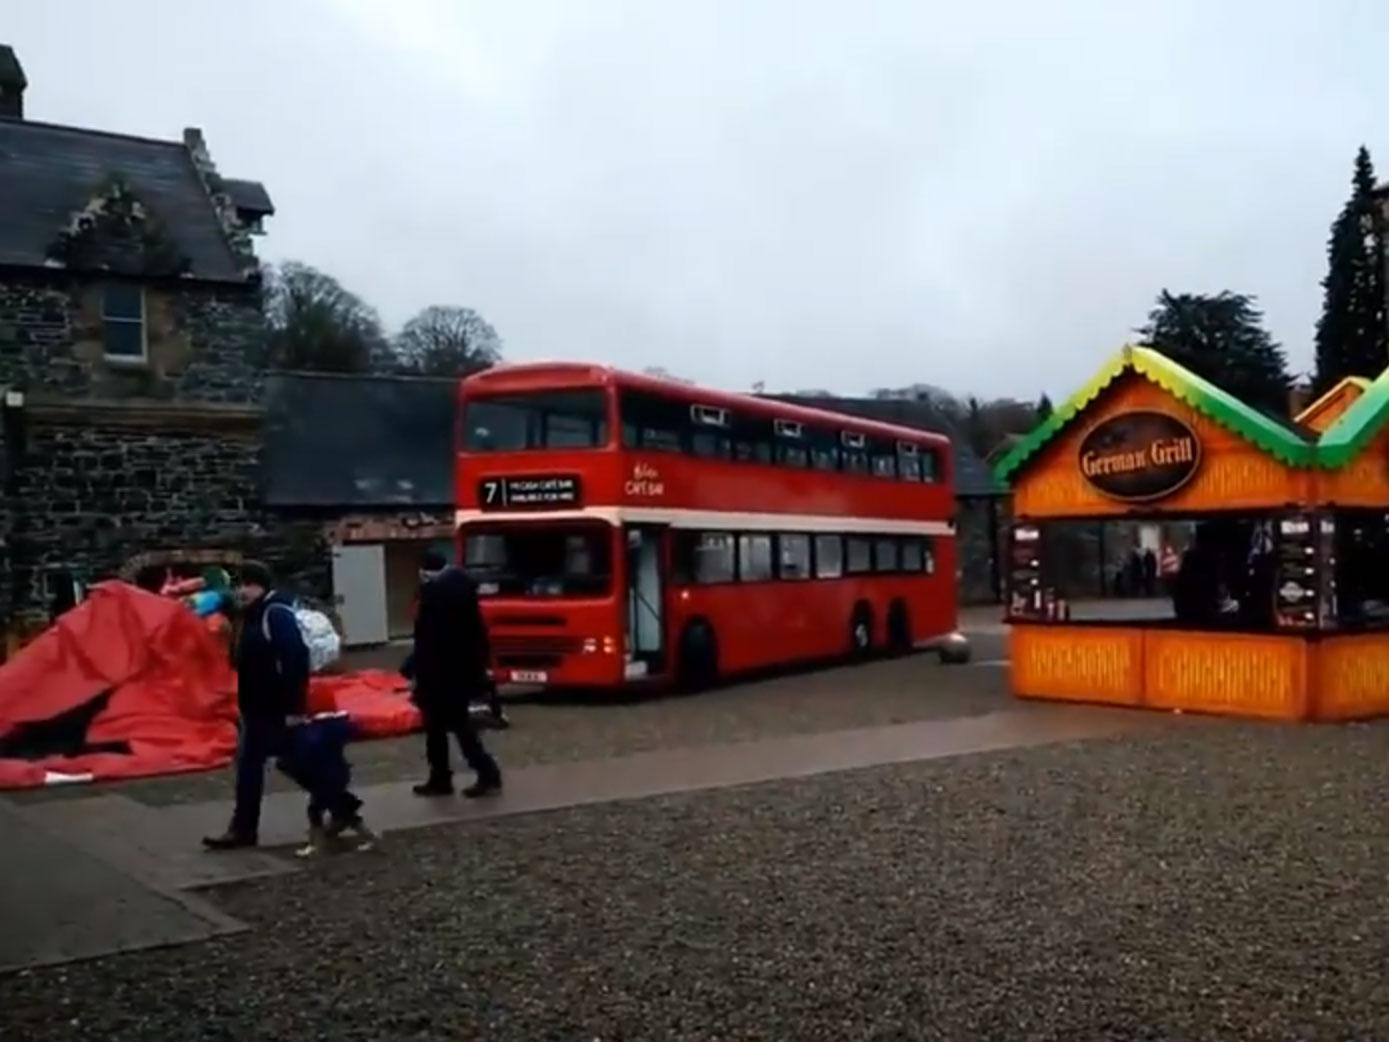 Winter Wonderland cancelled after 'falling way short of expectations'